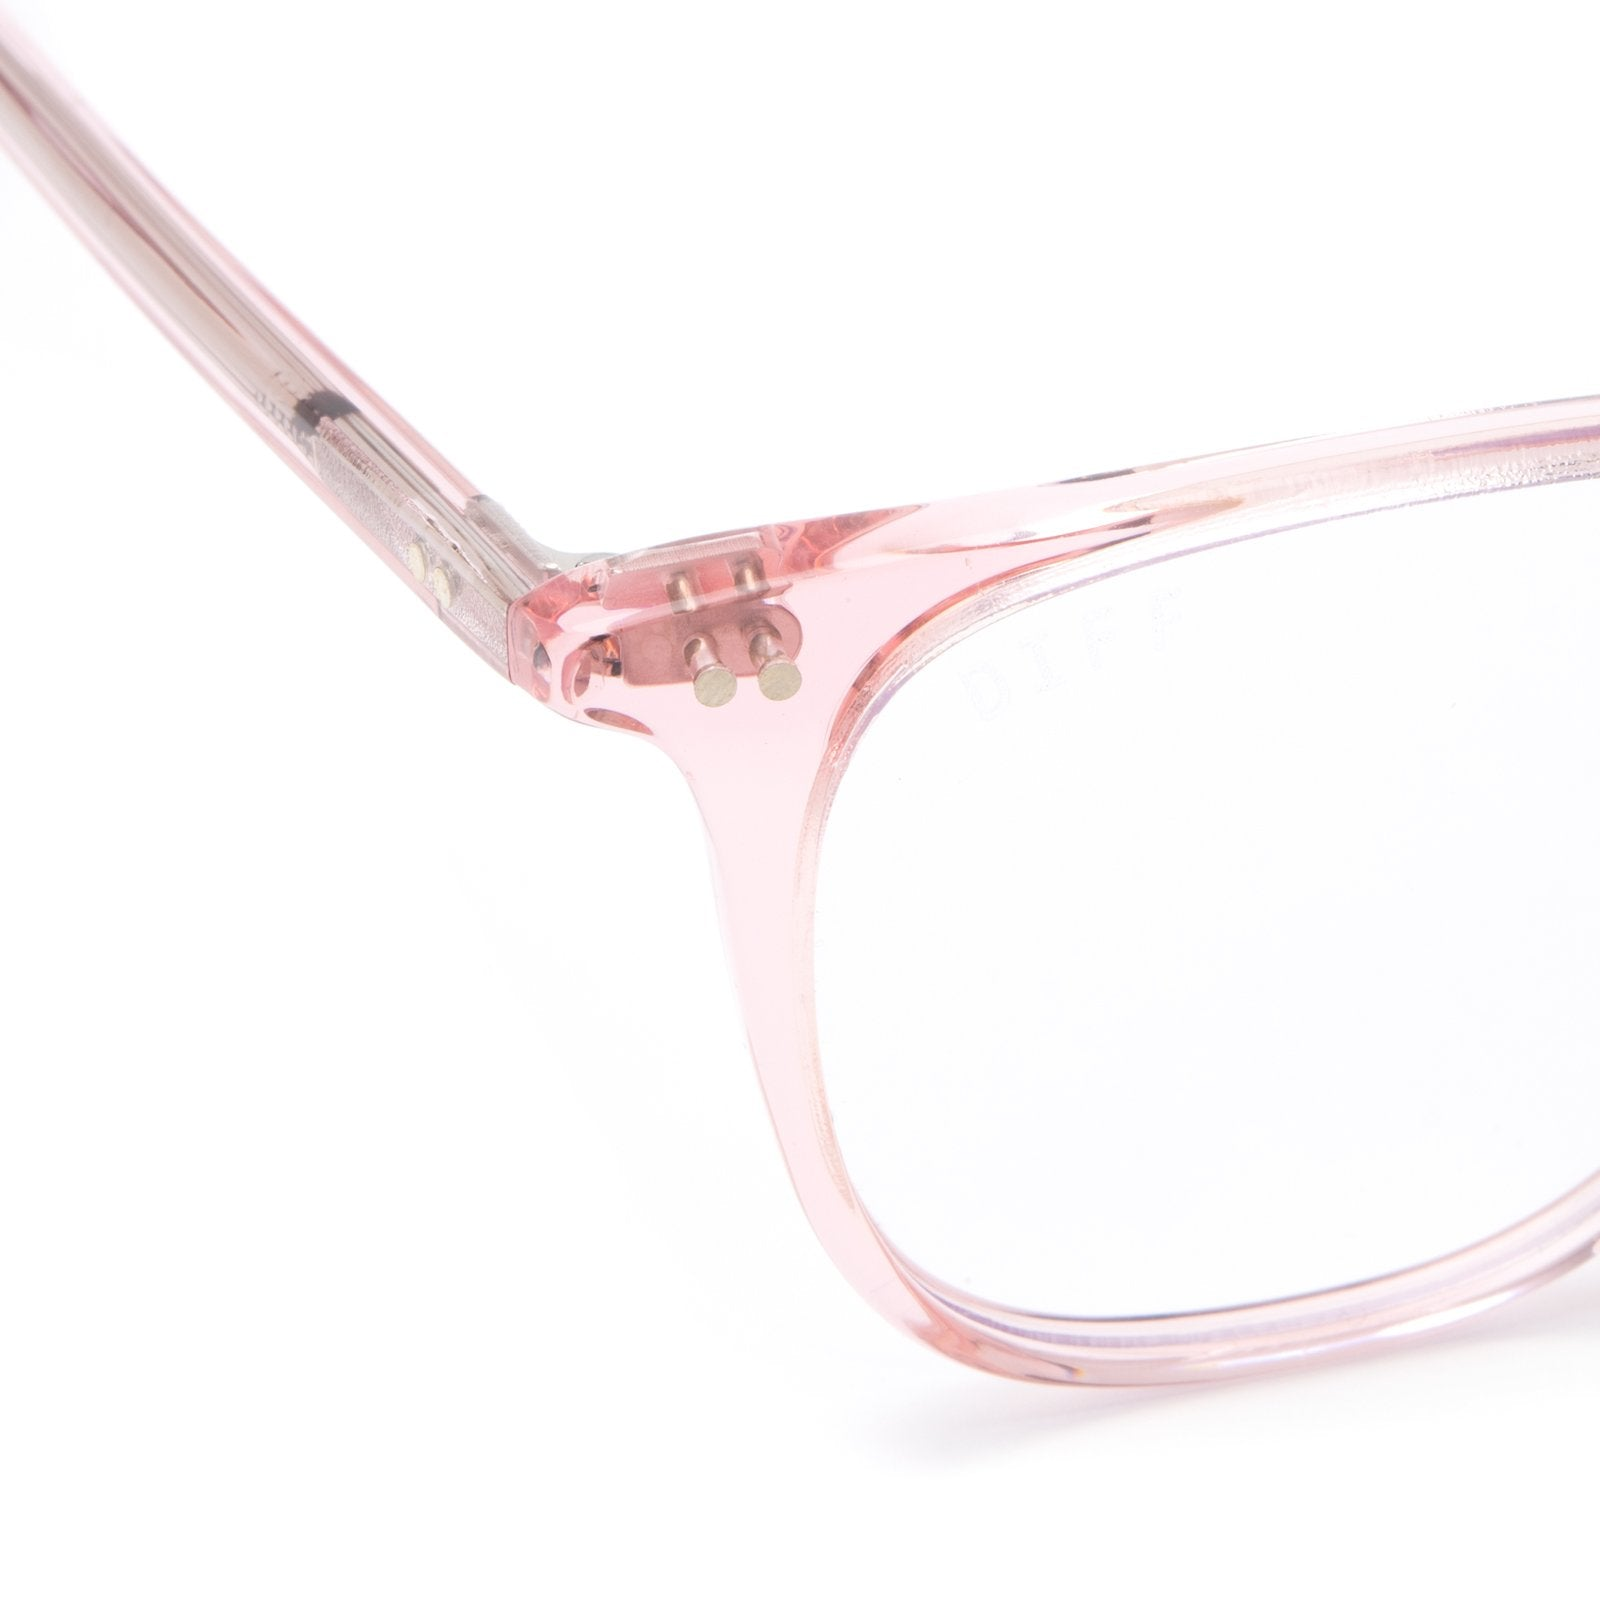 Maxwell glasses light pink frames with blue light technology detailed shot